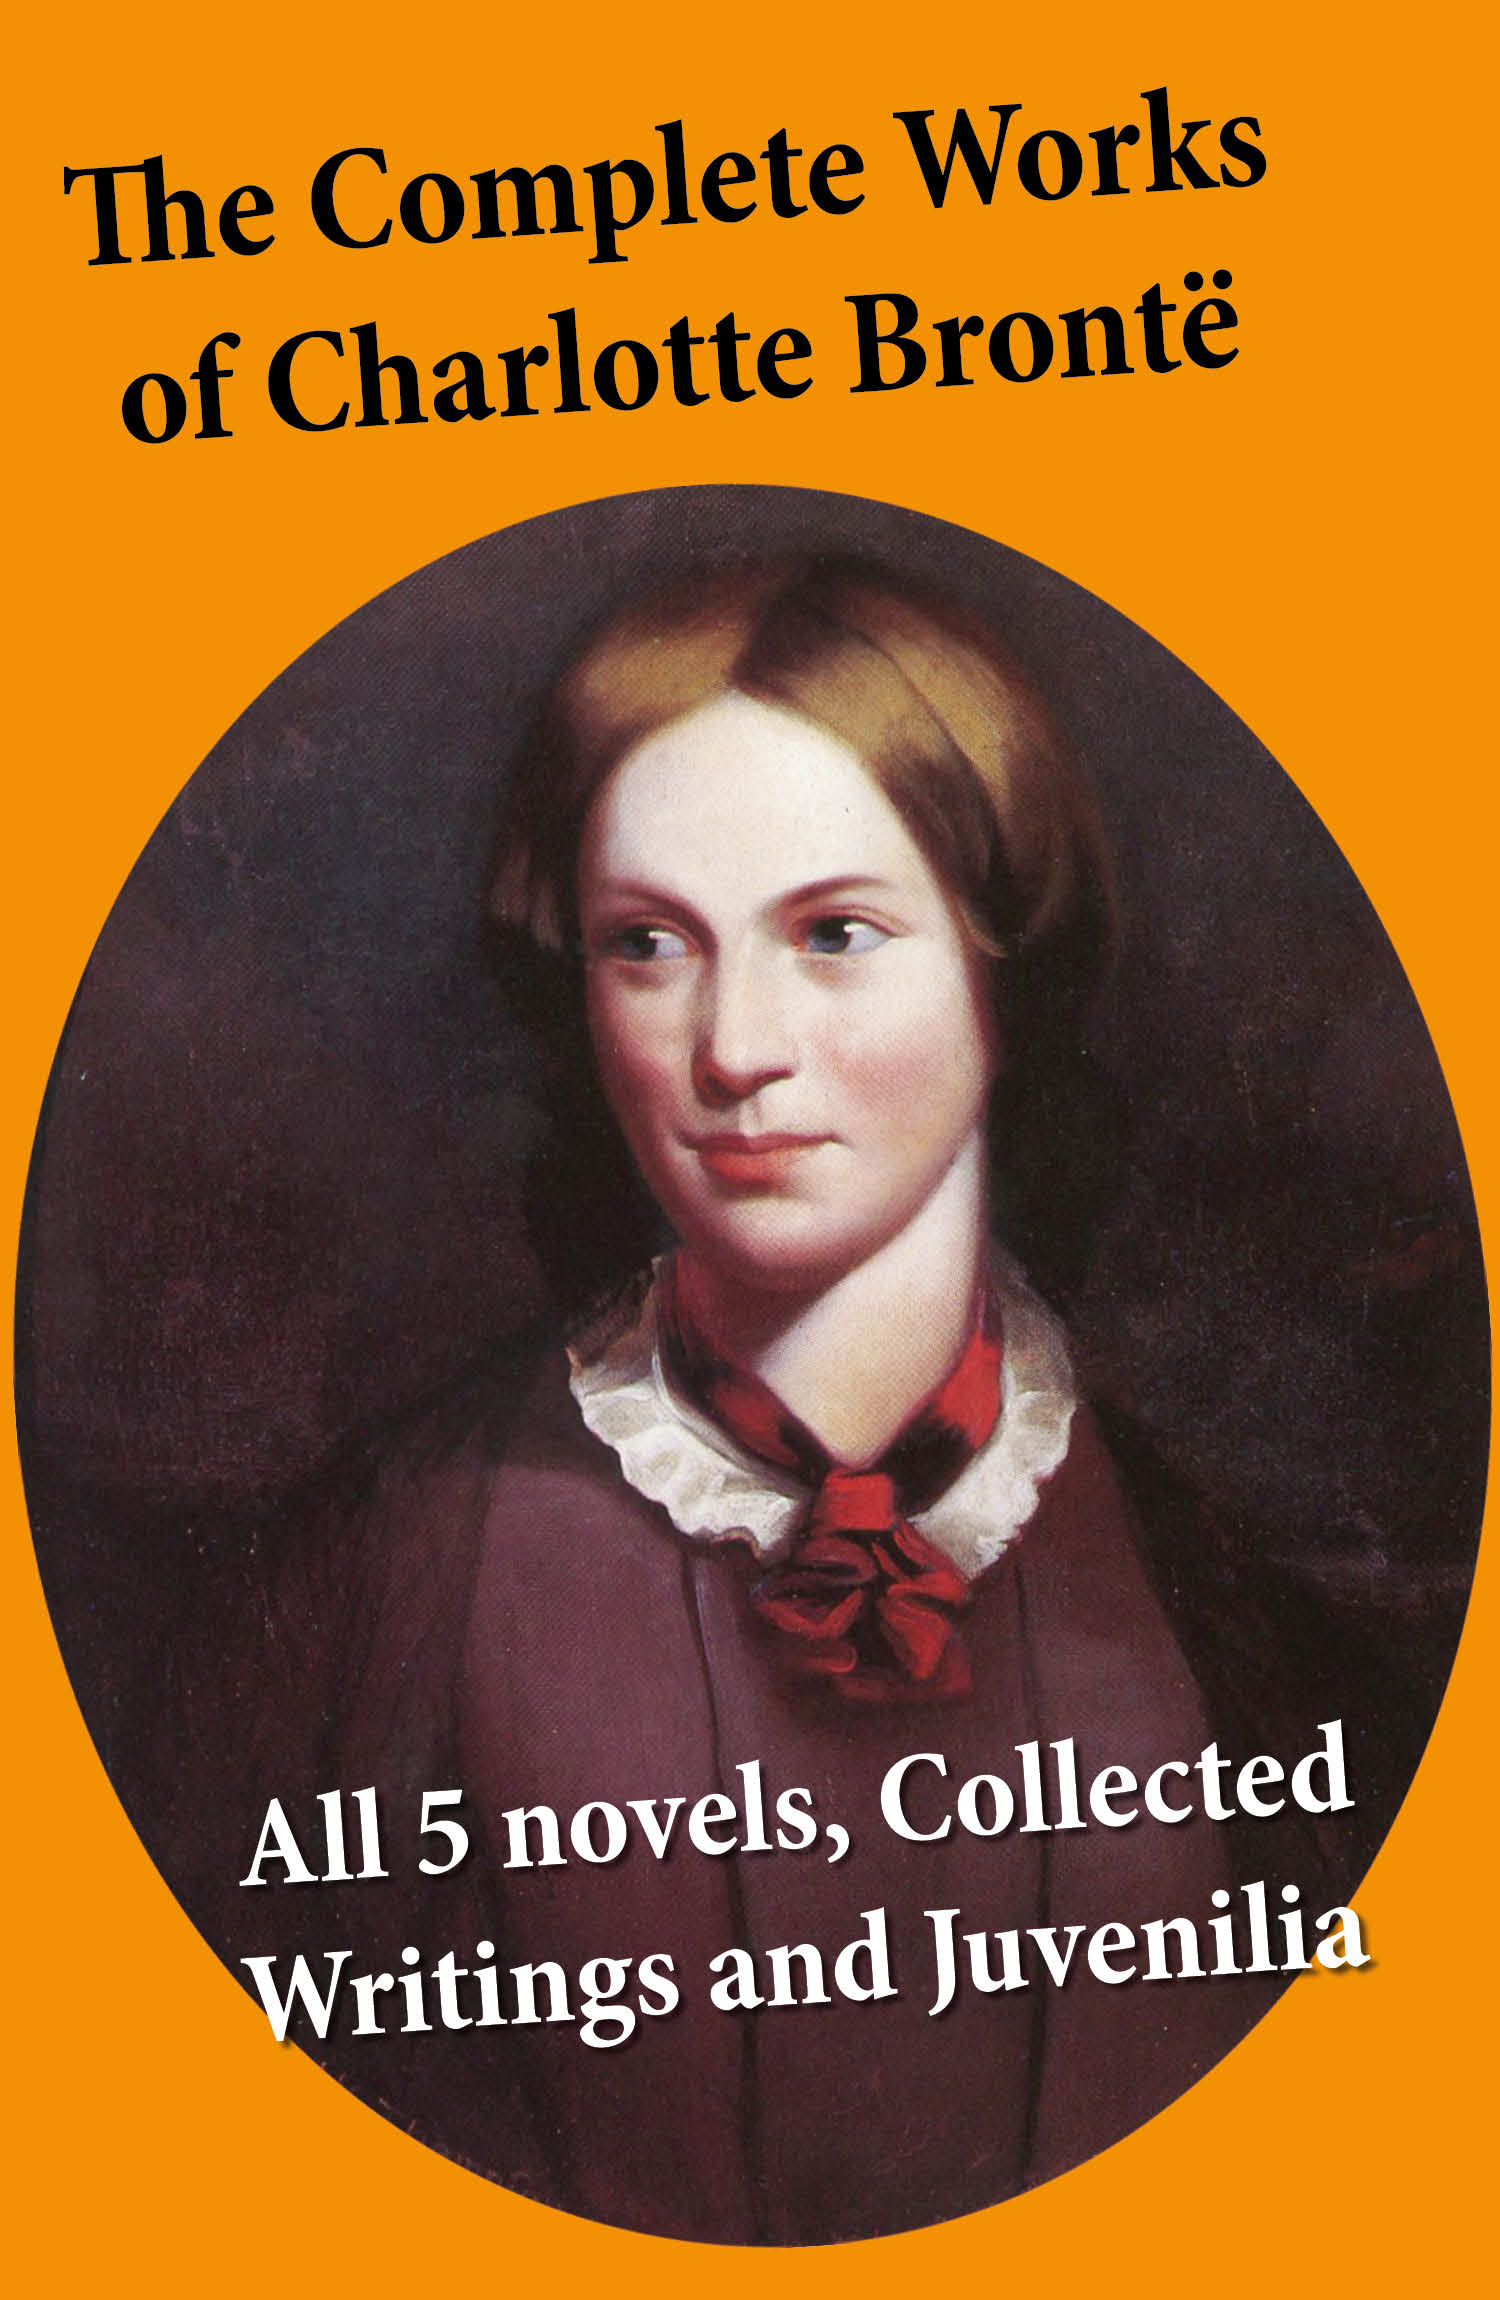 The Complete Works of Charlotte Brontë: all 5 novels + Collected Writings and Juvenilia